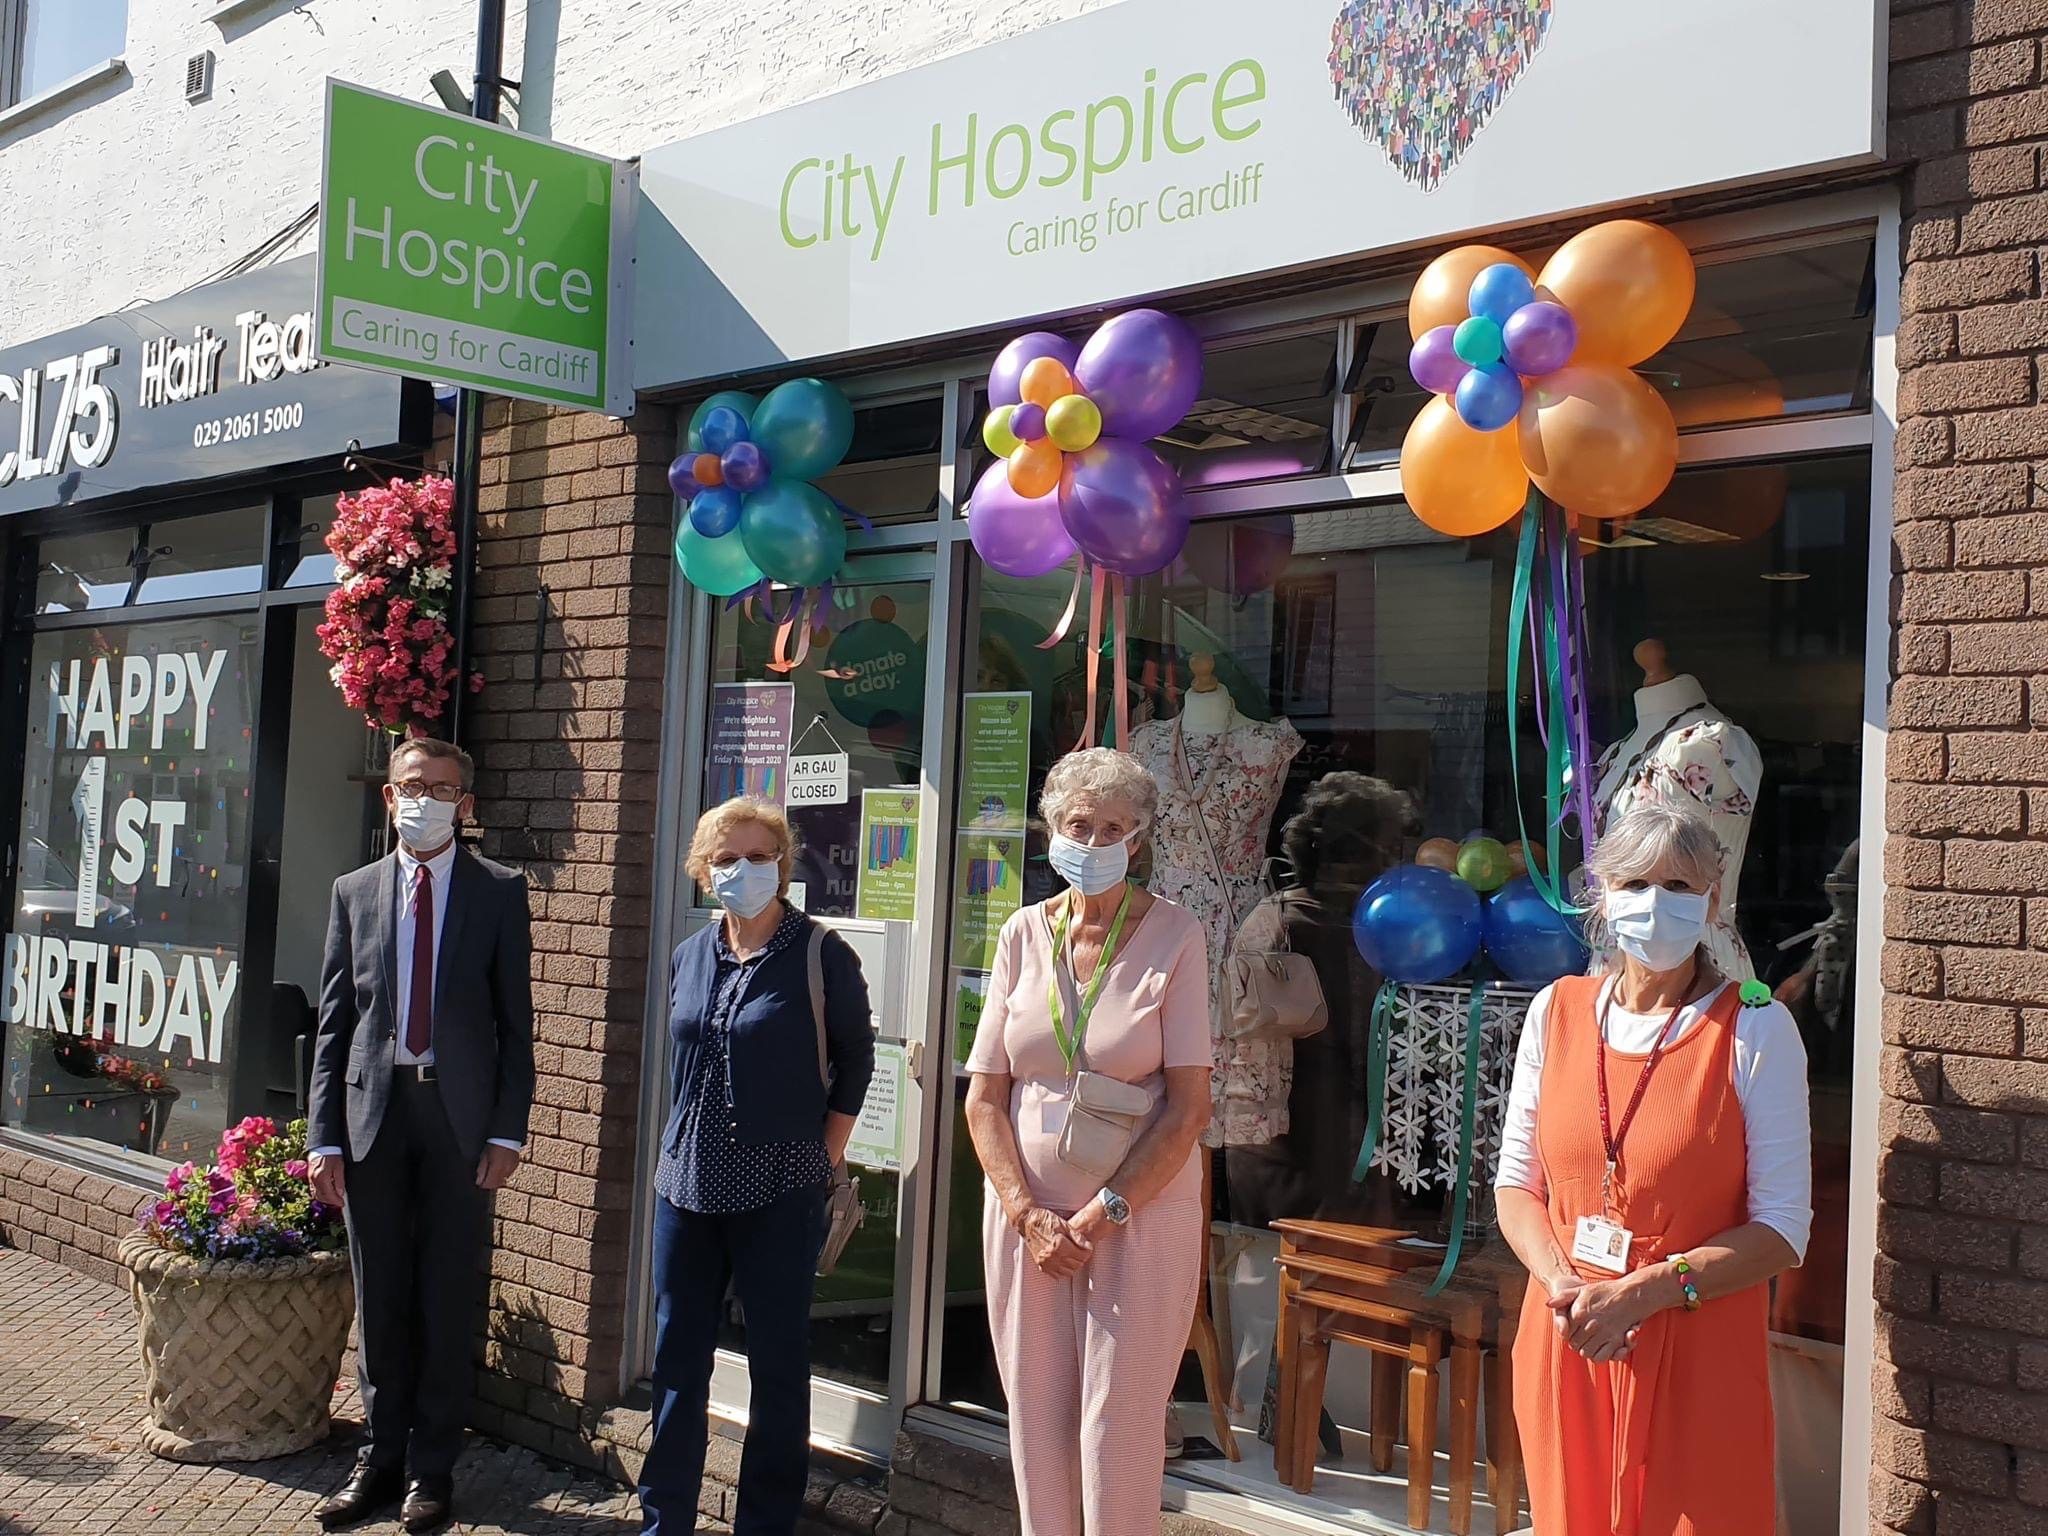 Volunteers stand socially distanced outside City Hospice Caring for Cardiff charity shop, they are wearing face masks and the shop front has colourful balloons decorating it